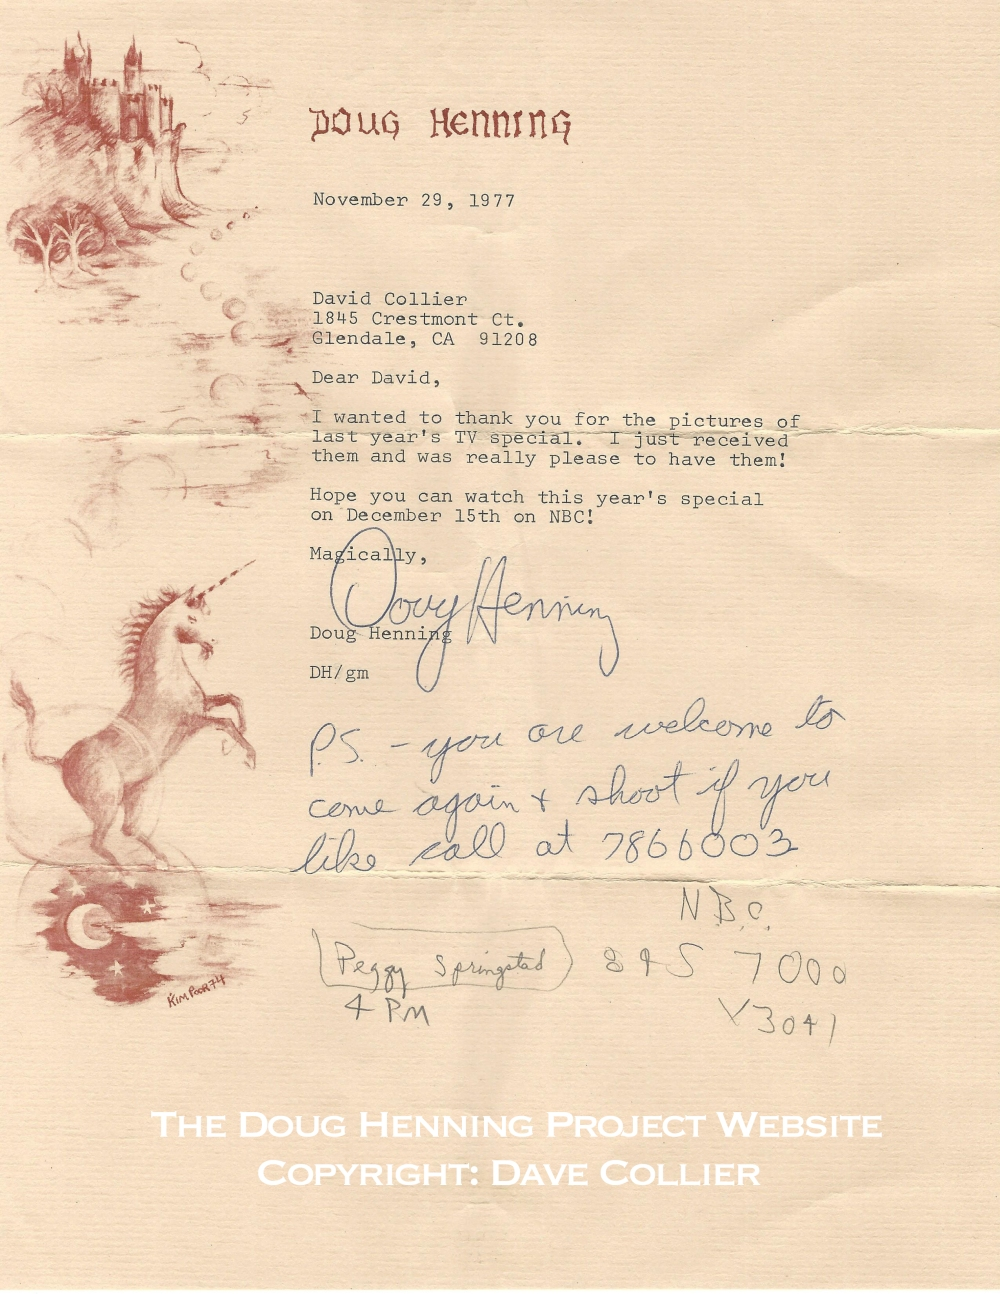 Letter from Doug Henning to Dave Collier